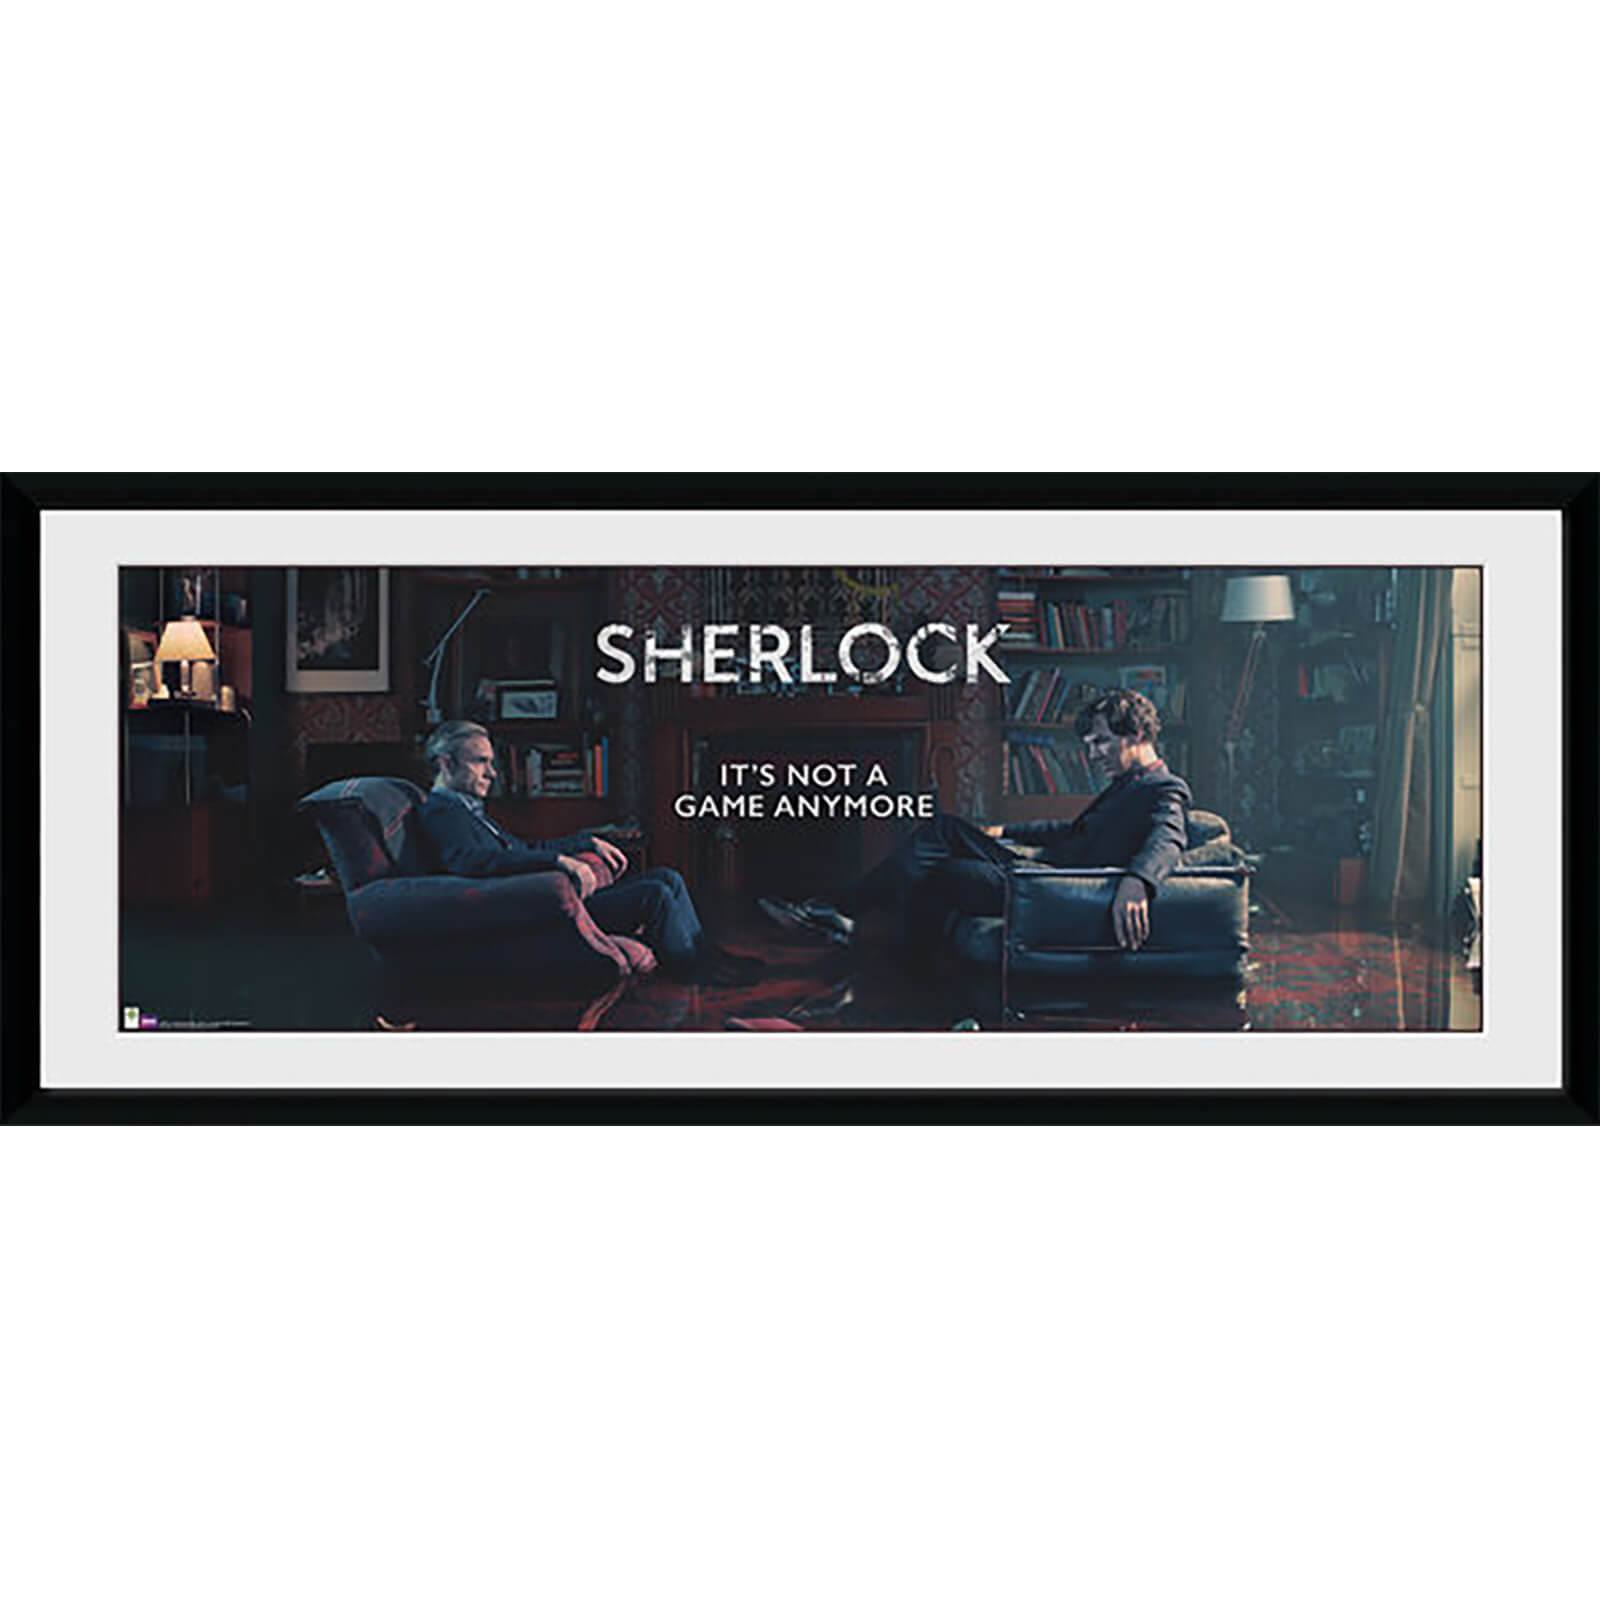 Sherlock Rising Tide - 30 x 12 Inches Framed Photograph